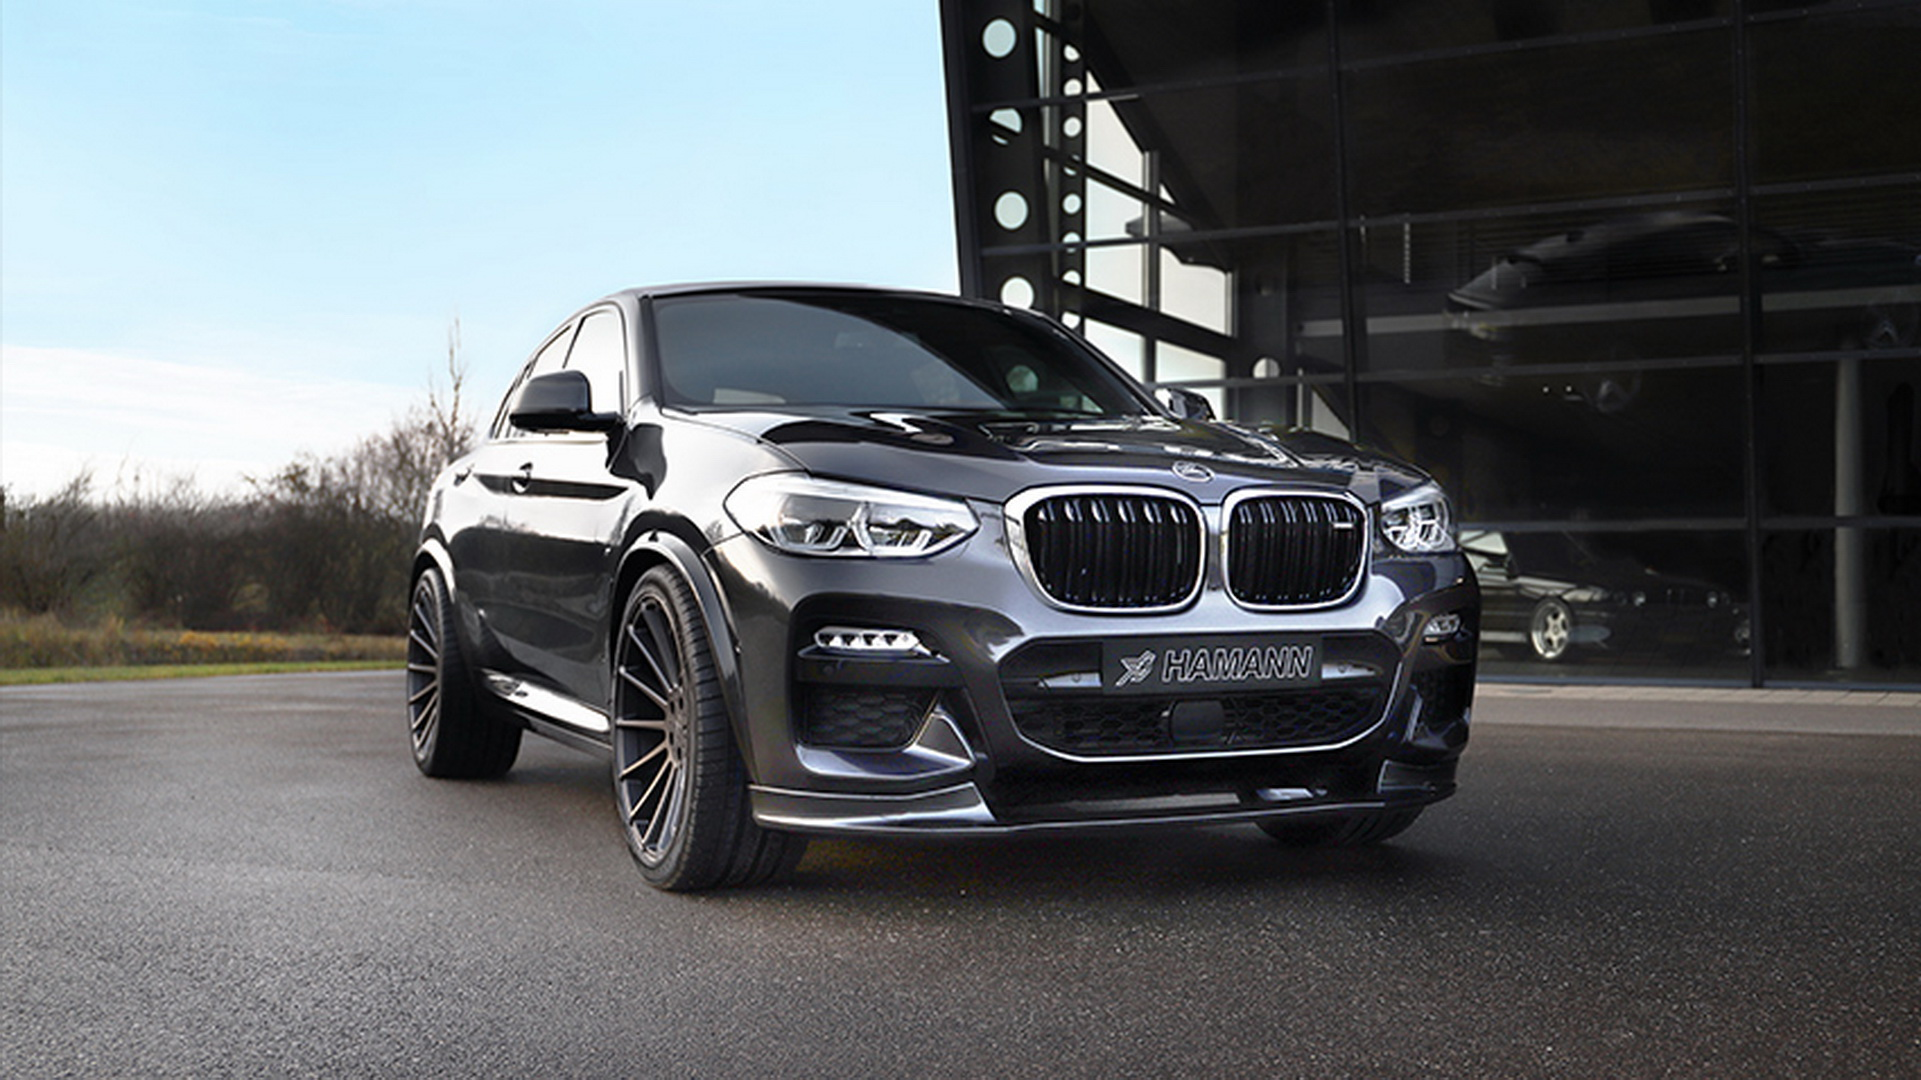 Many agree that the second generation of the BMW X4 is a failure in terms of design aesthetics, but tuners make money fixing such things, now don't they? Let's see what Hamann Motorsports has to say on the matter.